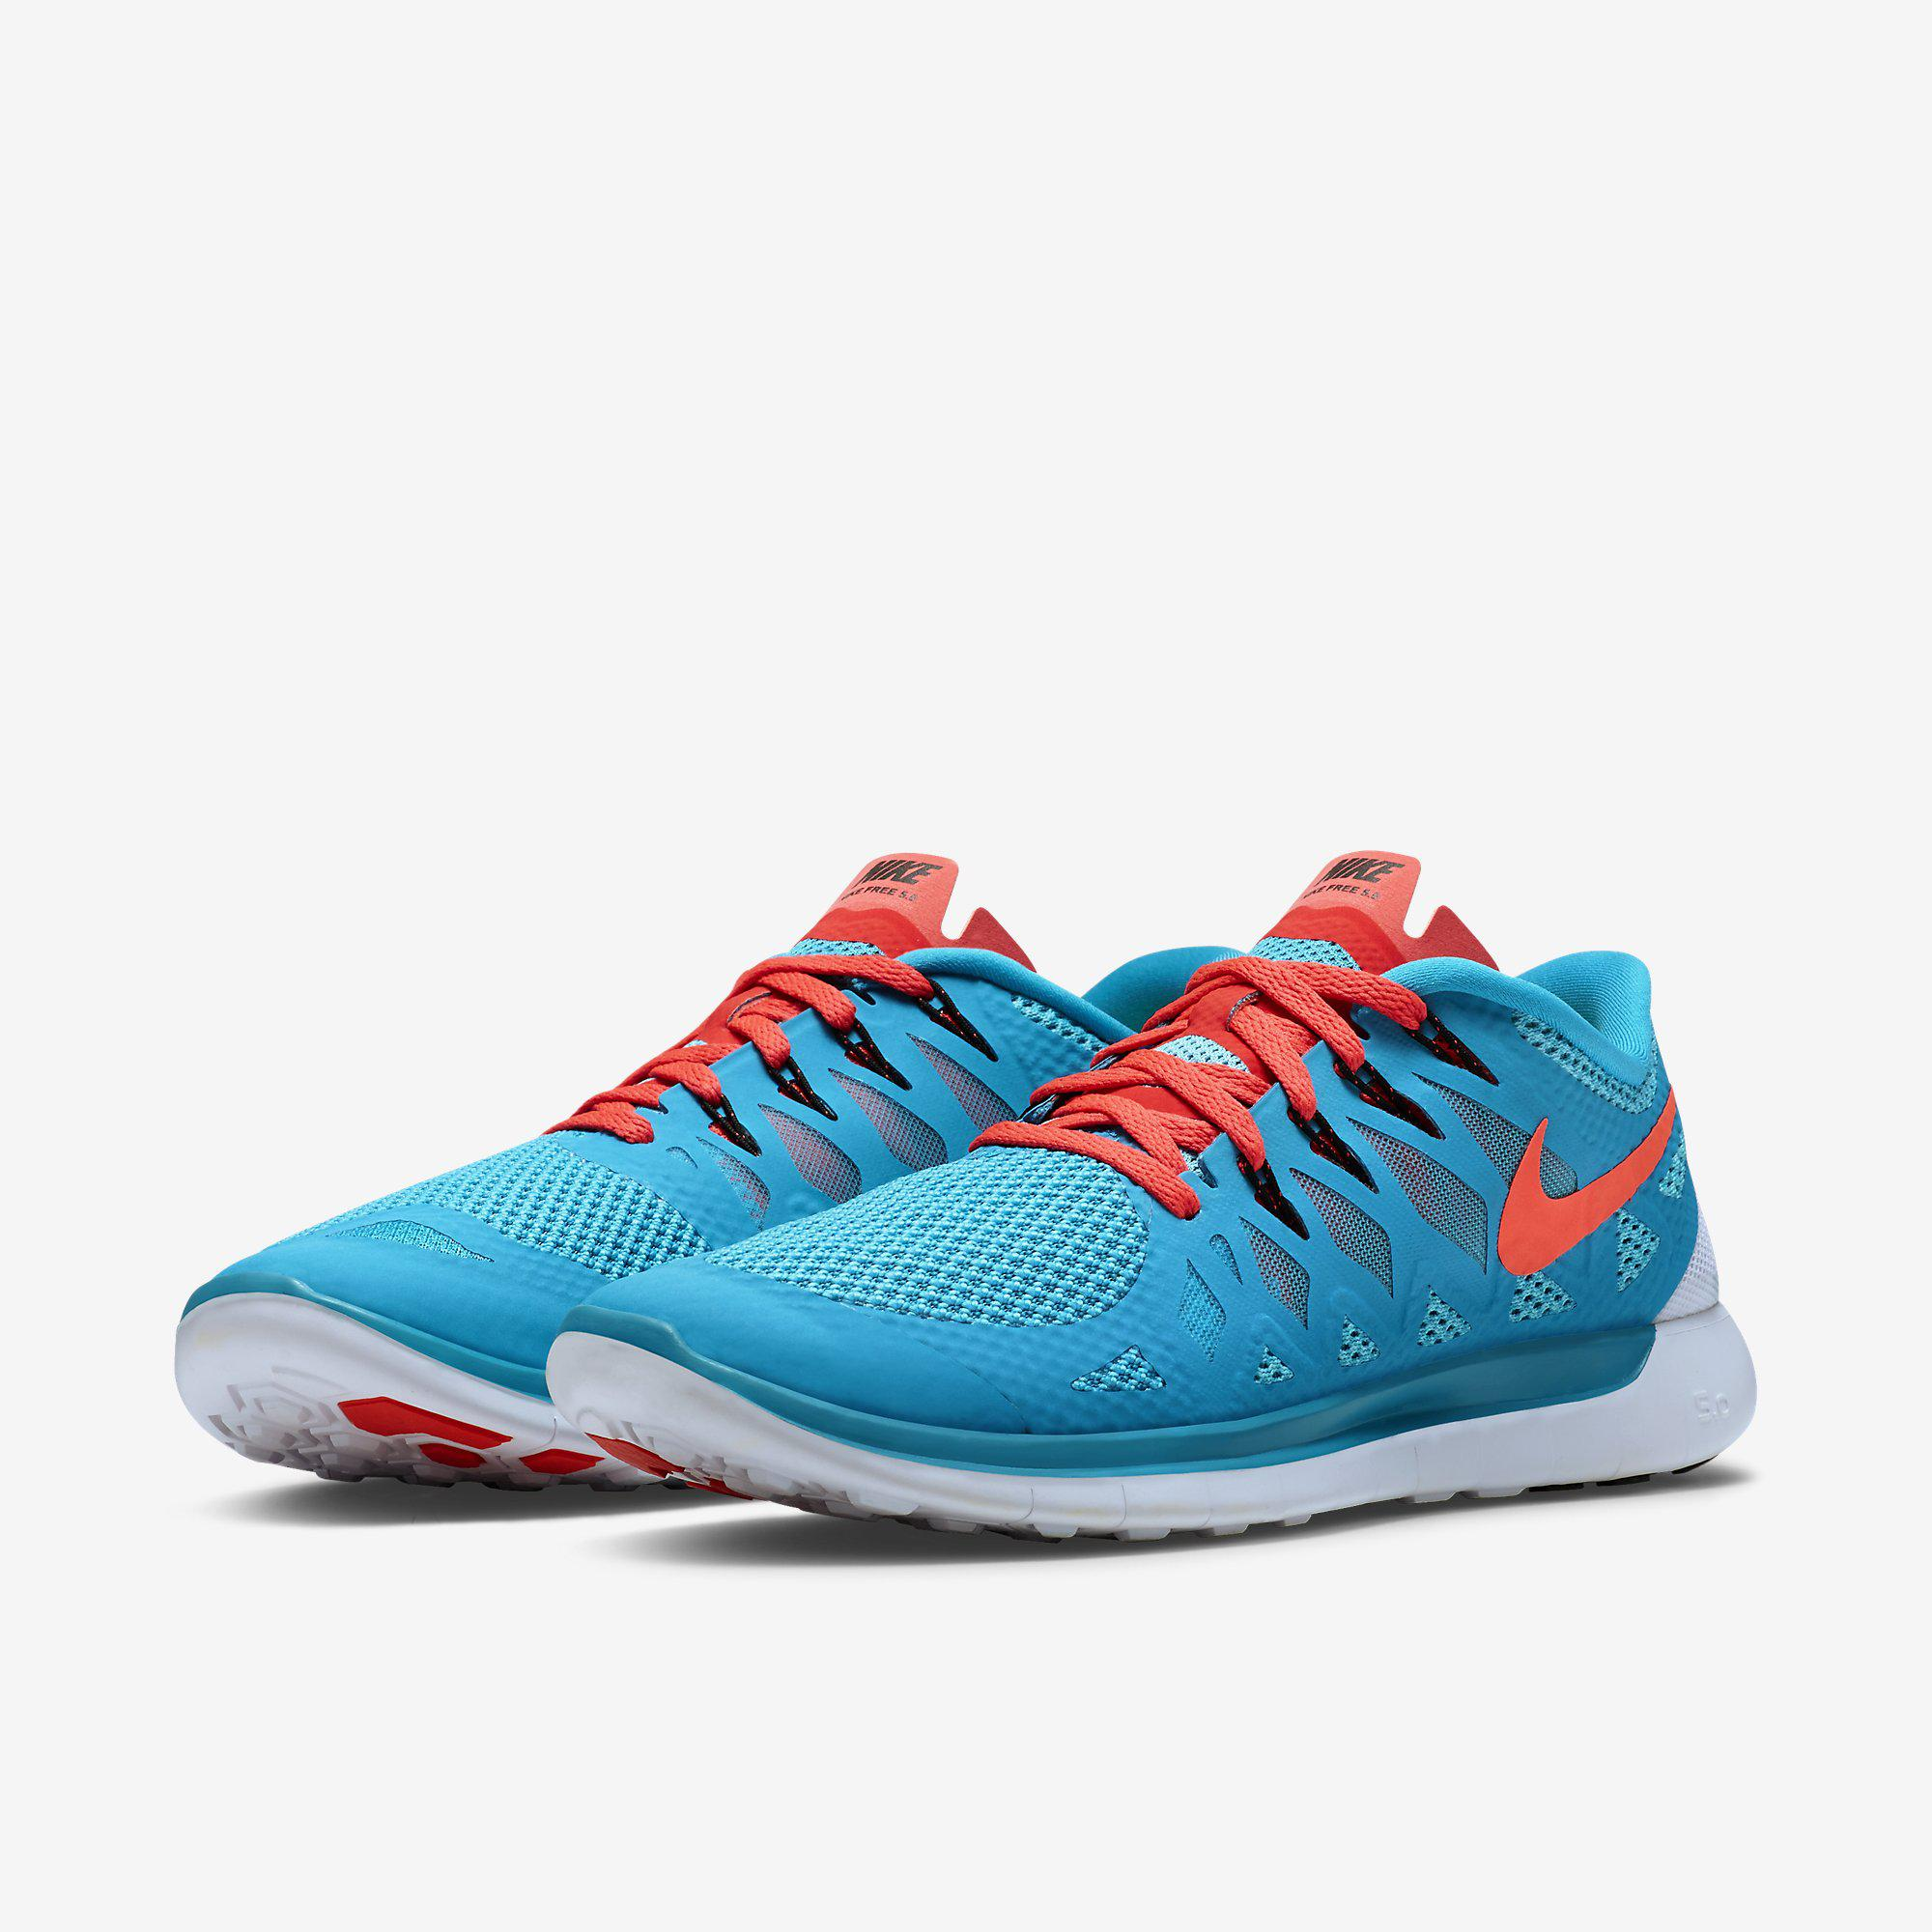 Mens Nike Free Run Running Shoes | Sports Direct